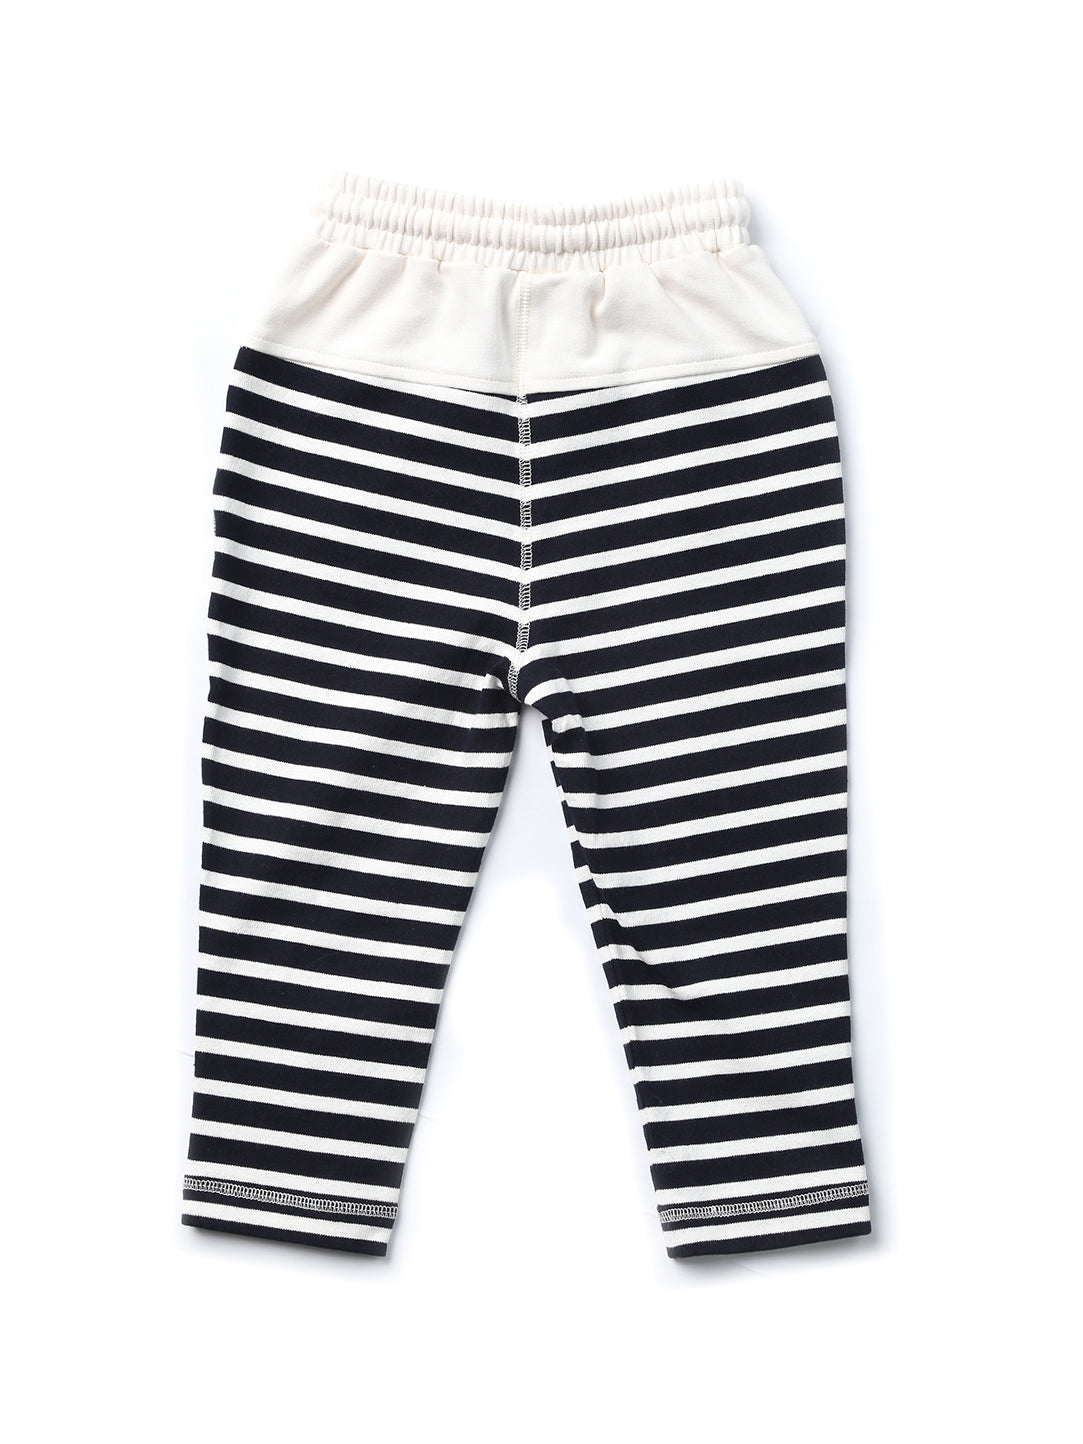 [KIDS] Contrast waist band detail button down pants